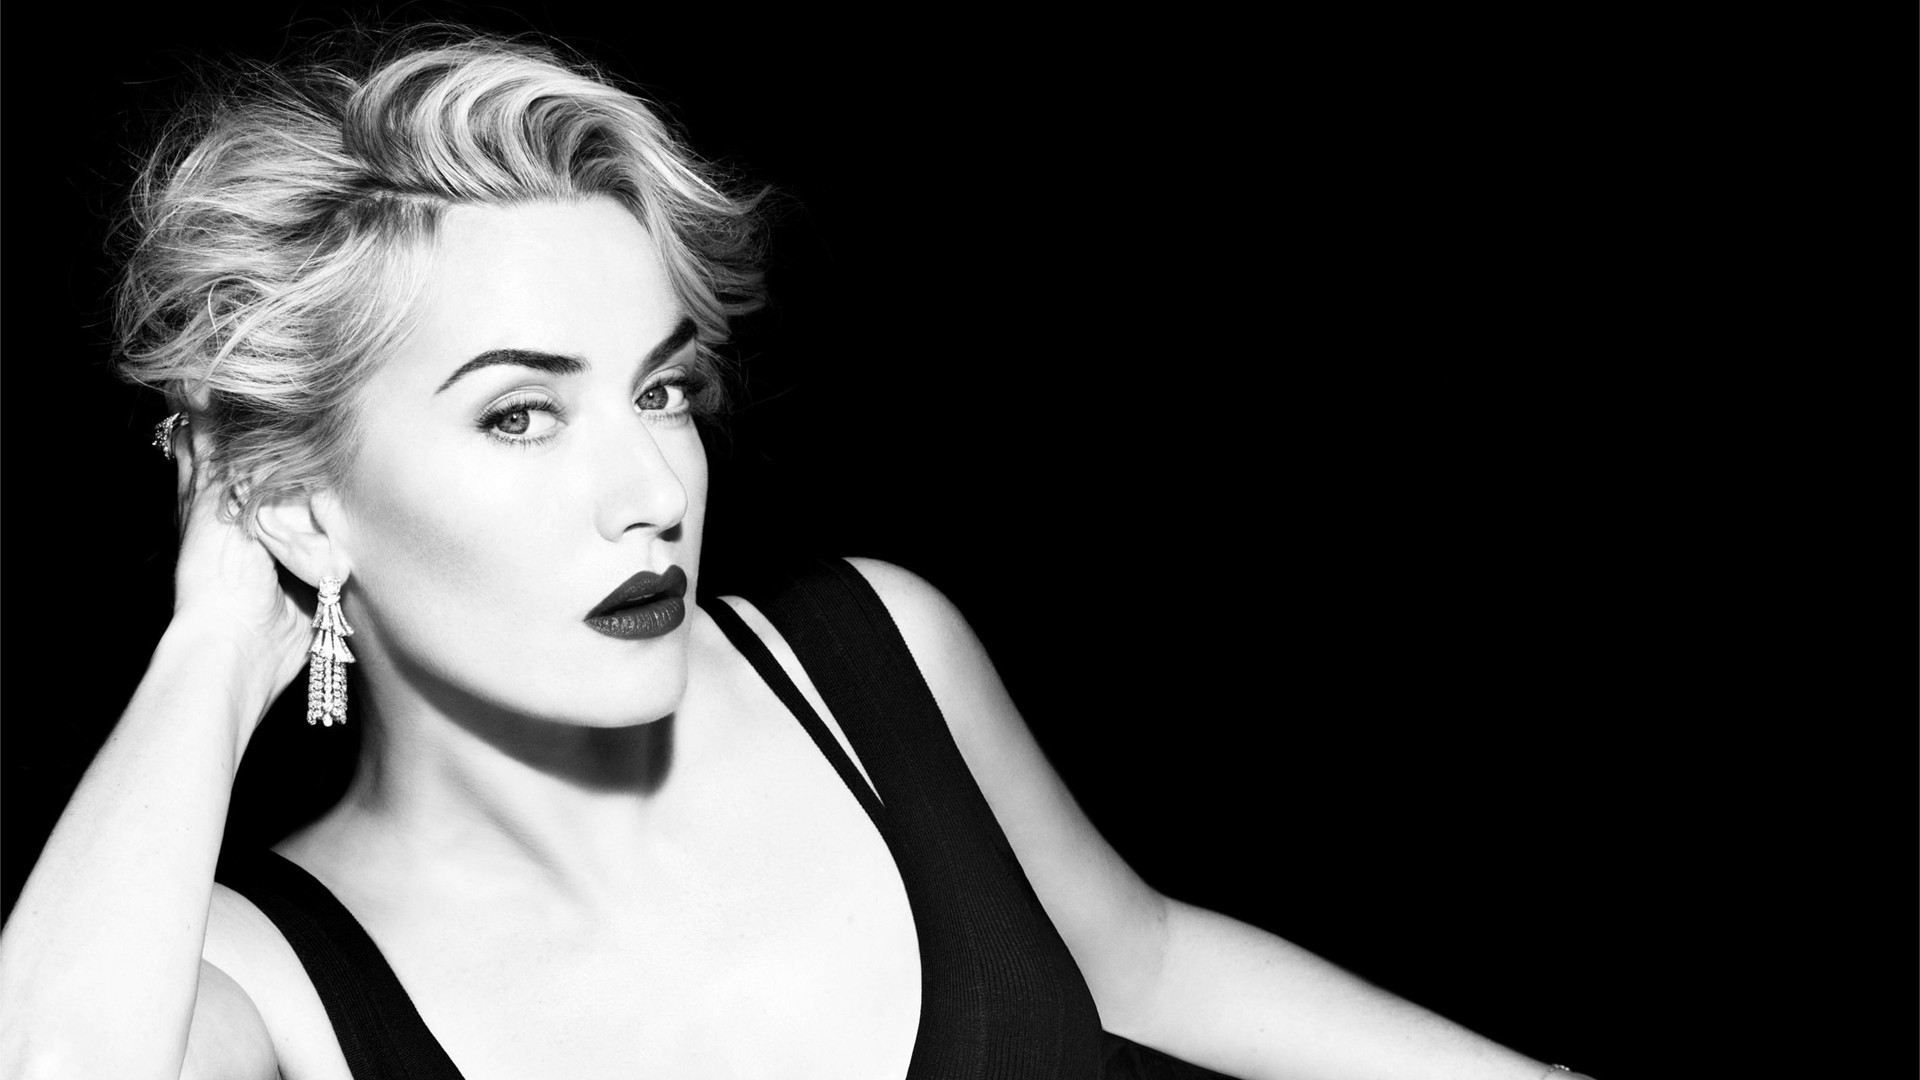 Kate Winslet Wallpaper HD Free Download